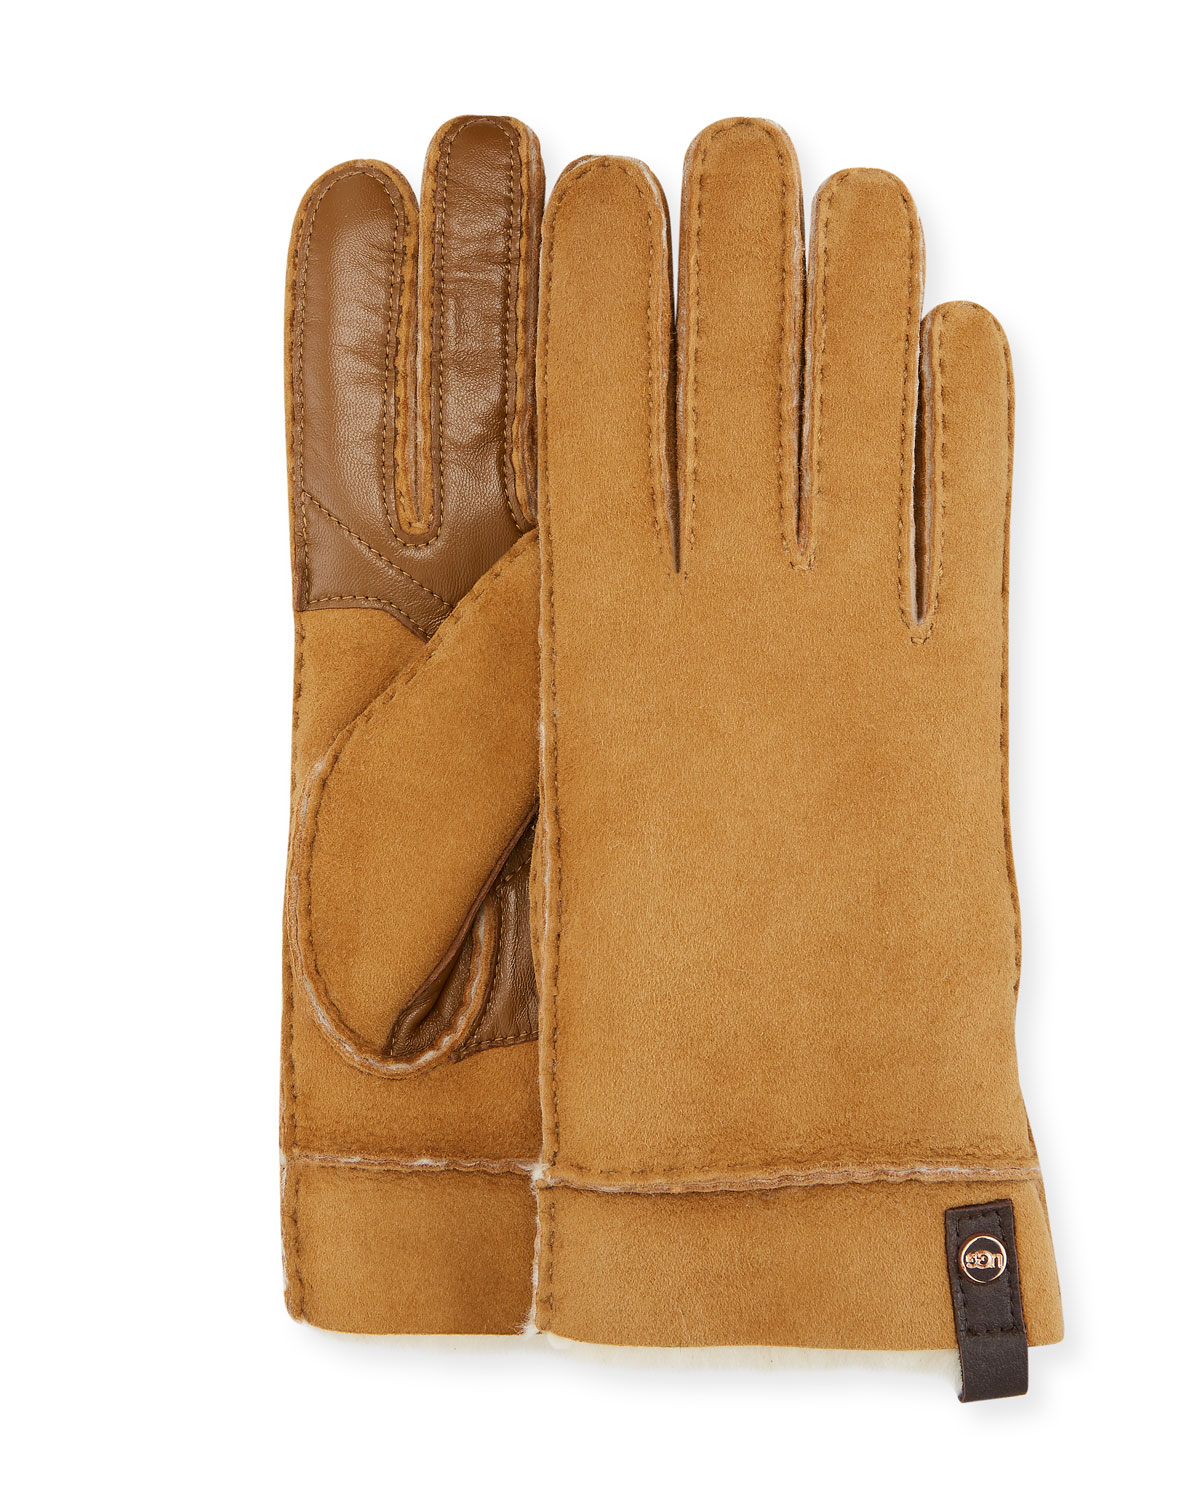 Tenney Suede & Leather Gloves W/ Shearling Lining in Chestnut